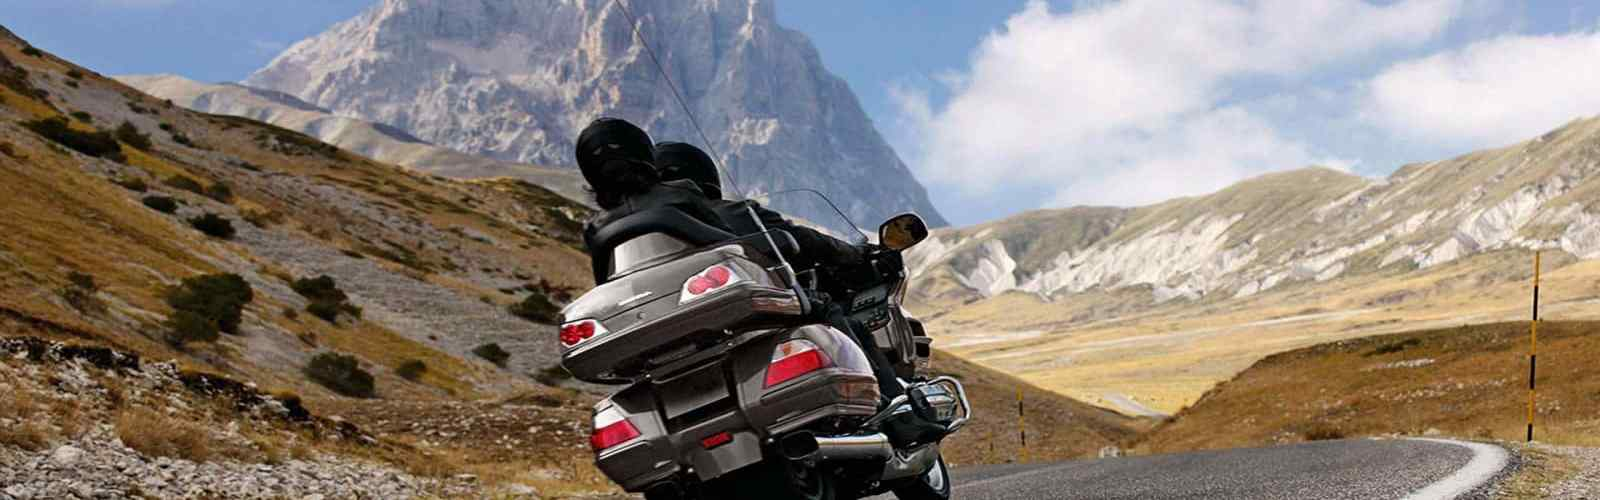 Great Dolomites Route, a legendary motorcycle road in Italy